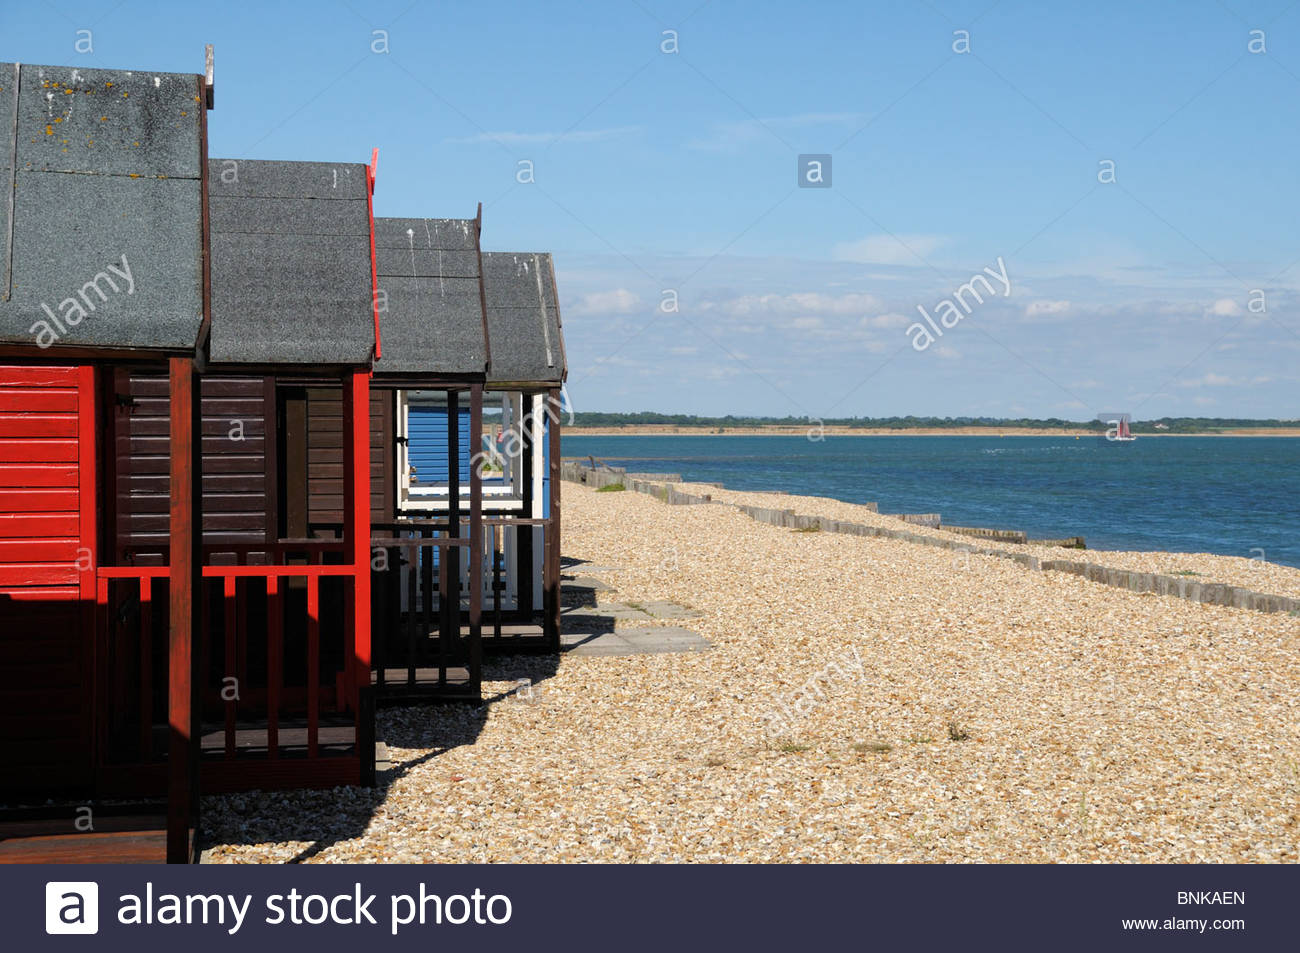 Picturesque image of staggered beach huts on the seafront at Calshot in Hampshire, England - Stock Image